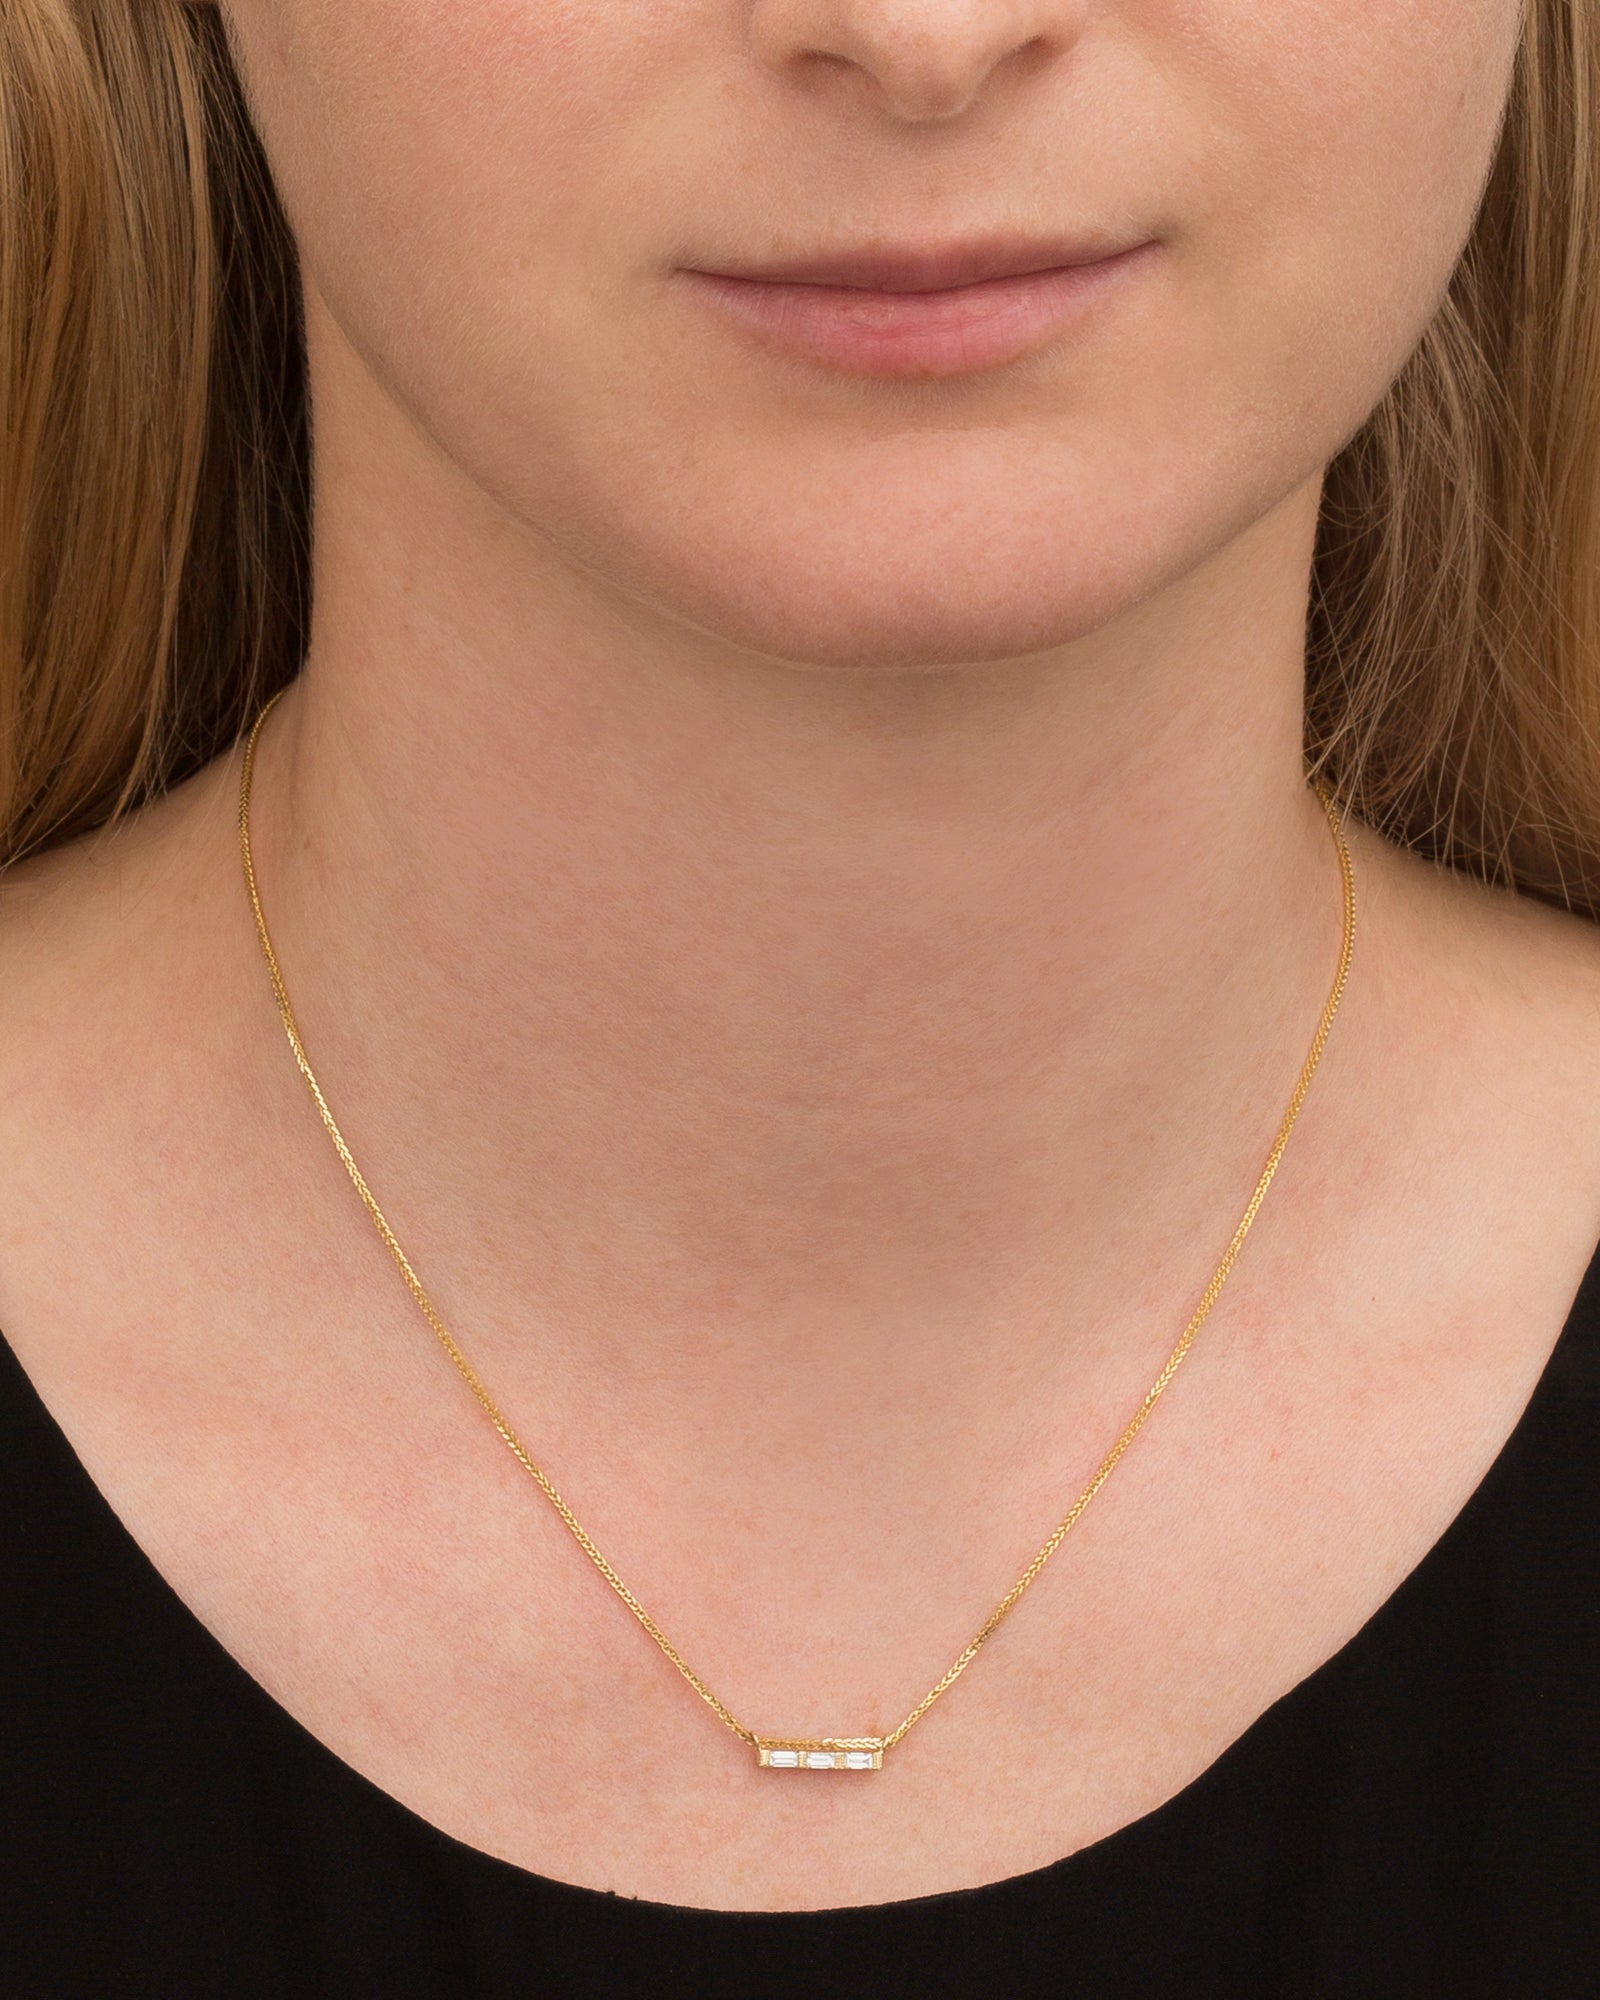 3 Baguette Necklace by Jennie Kwon for Broken English Jewelry